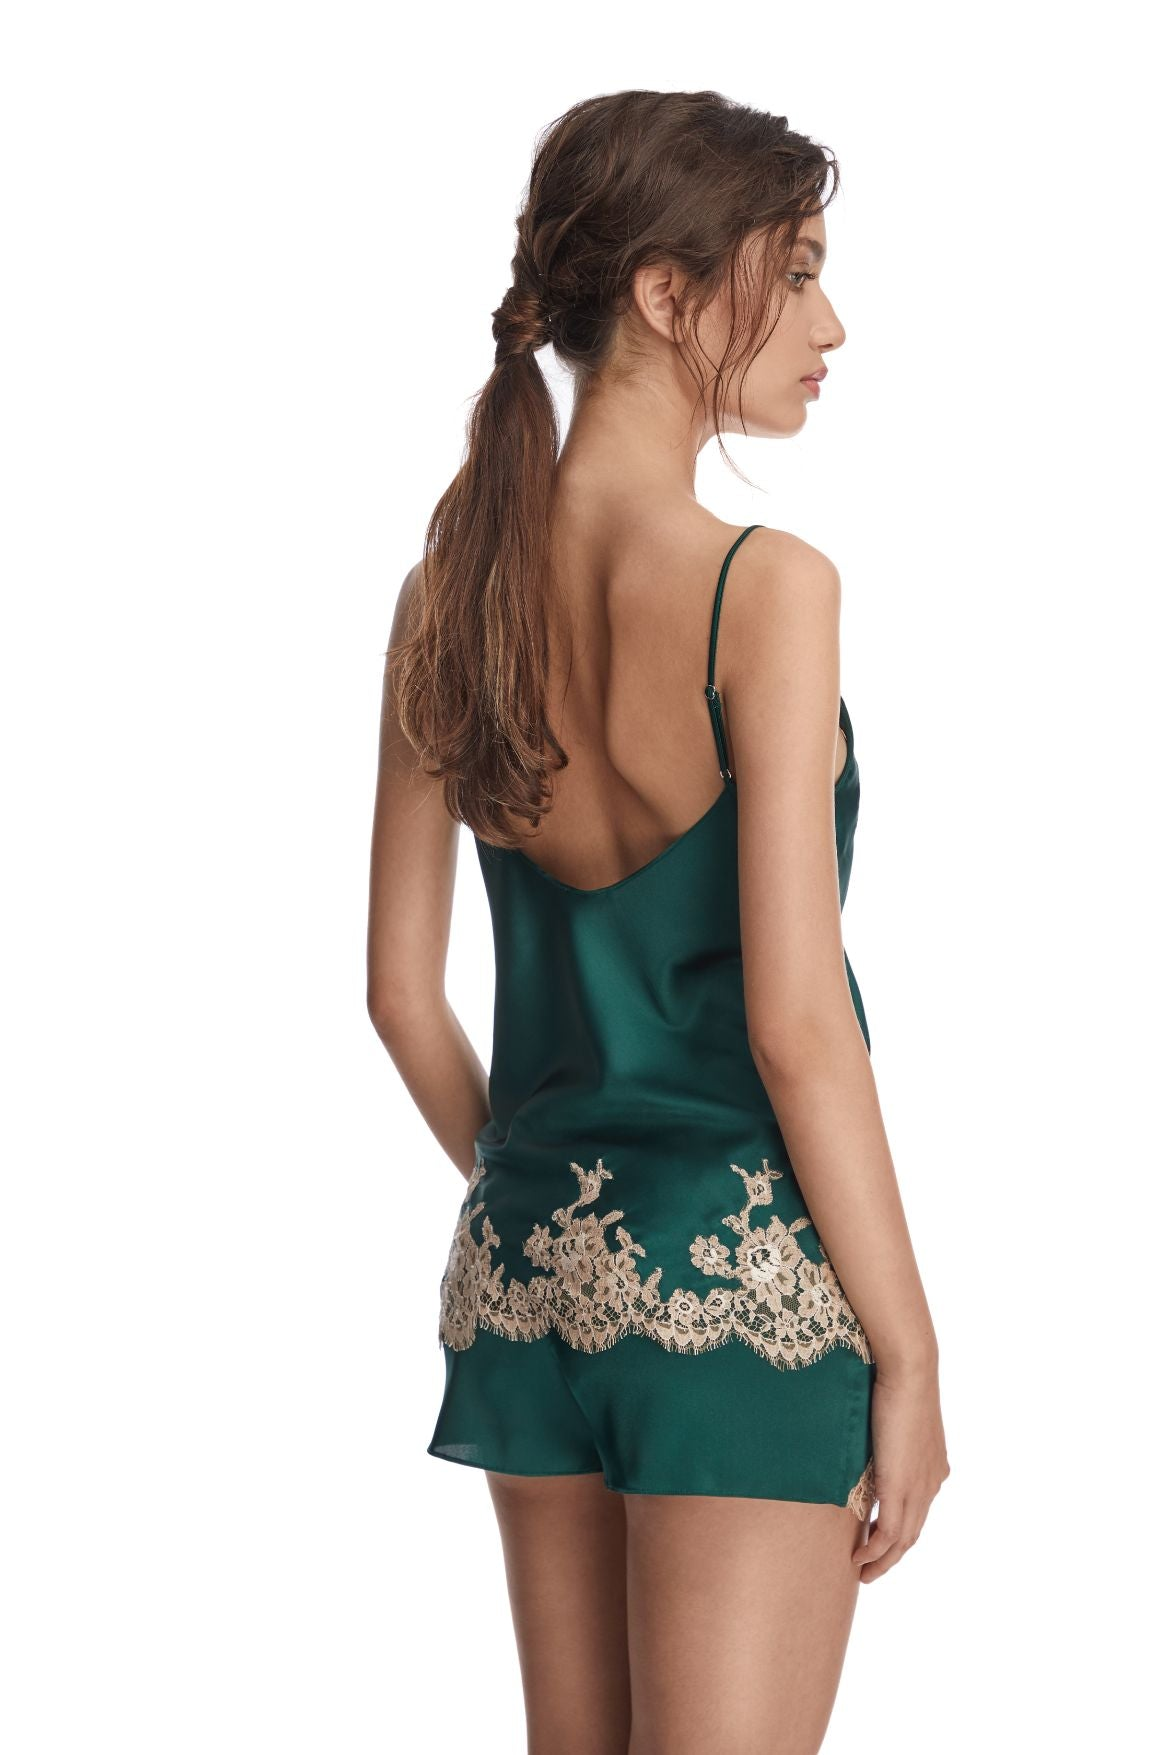 Manhattan Morning Camisole in Emerald/Nude